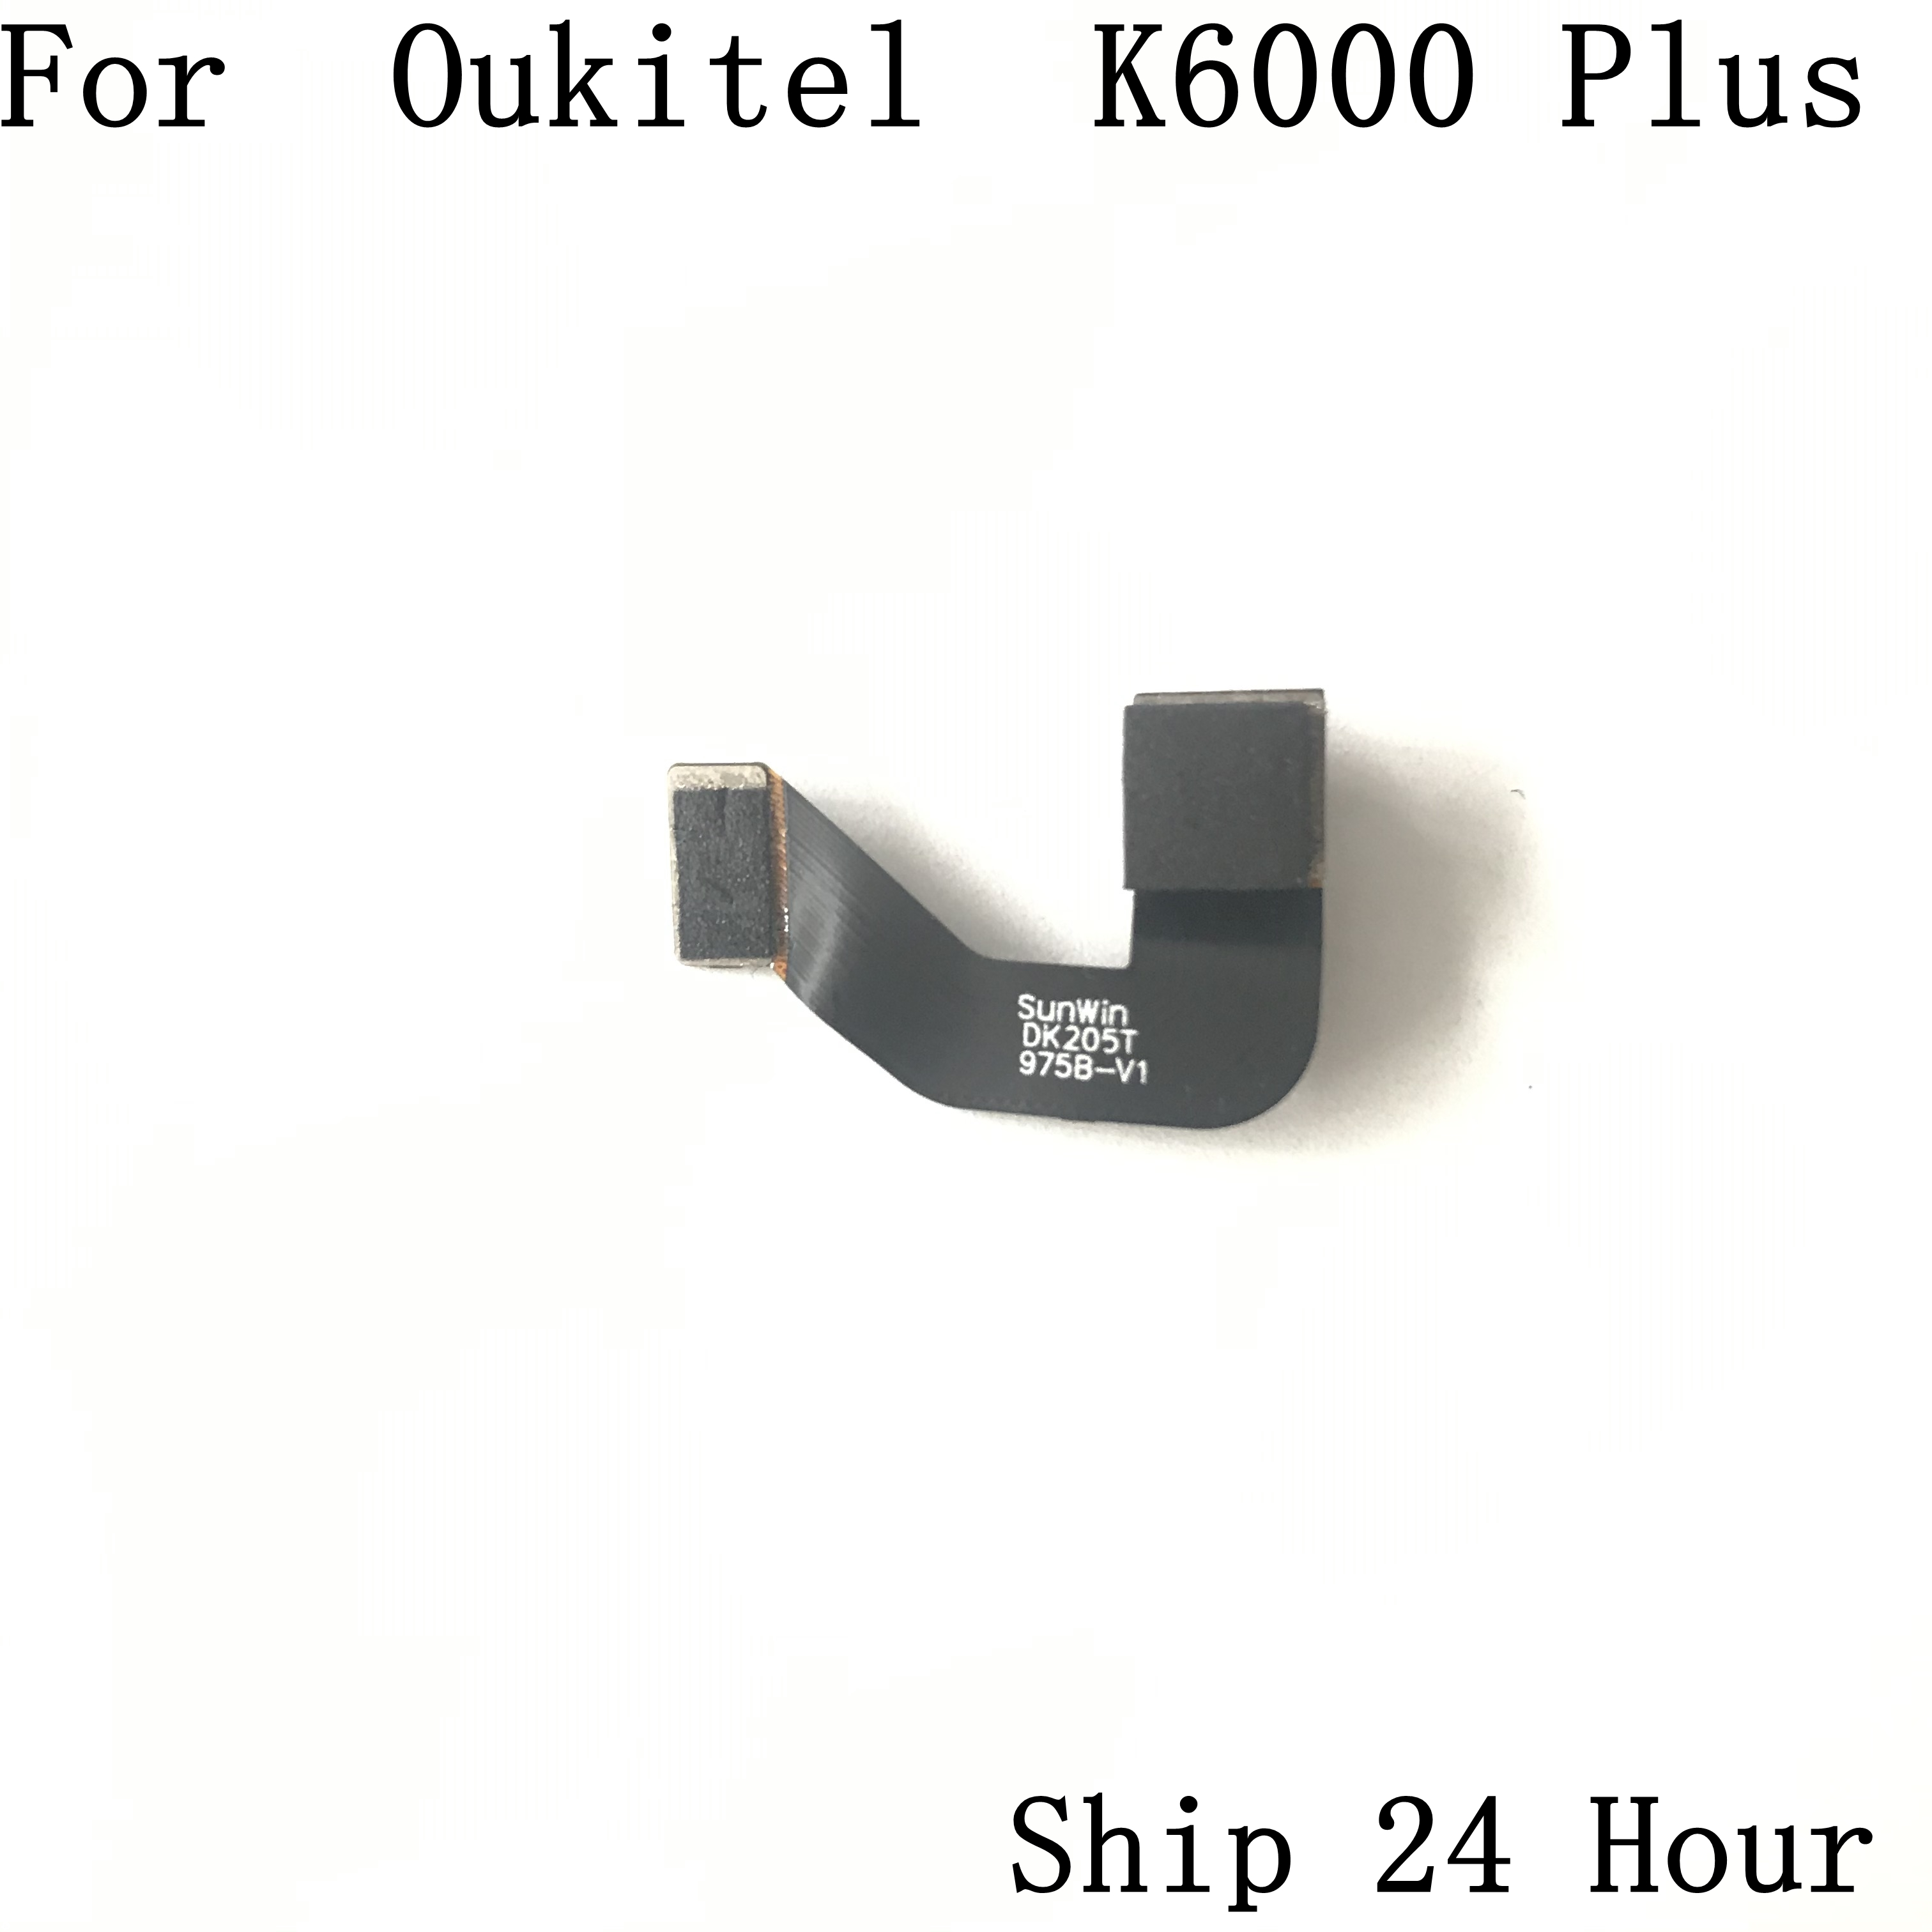 Oukitel K6000 Plus Used Front Camera 8.0MP Module For Oukitel K6000 Plus Repair Fixing Part Replacement enlarge